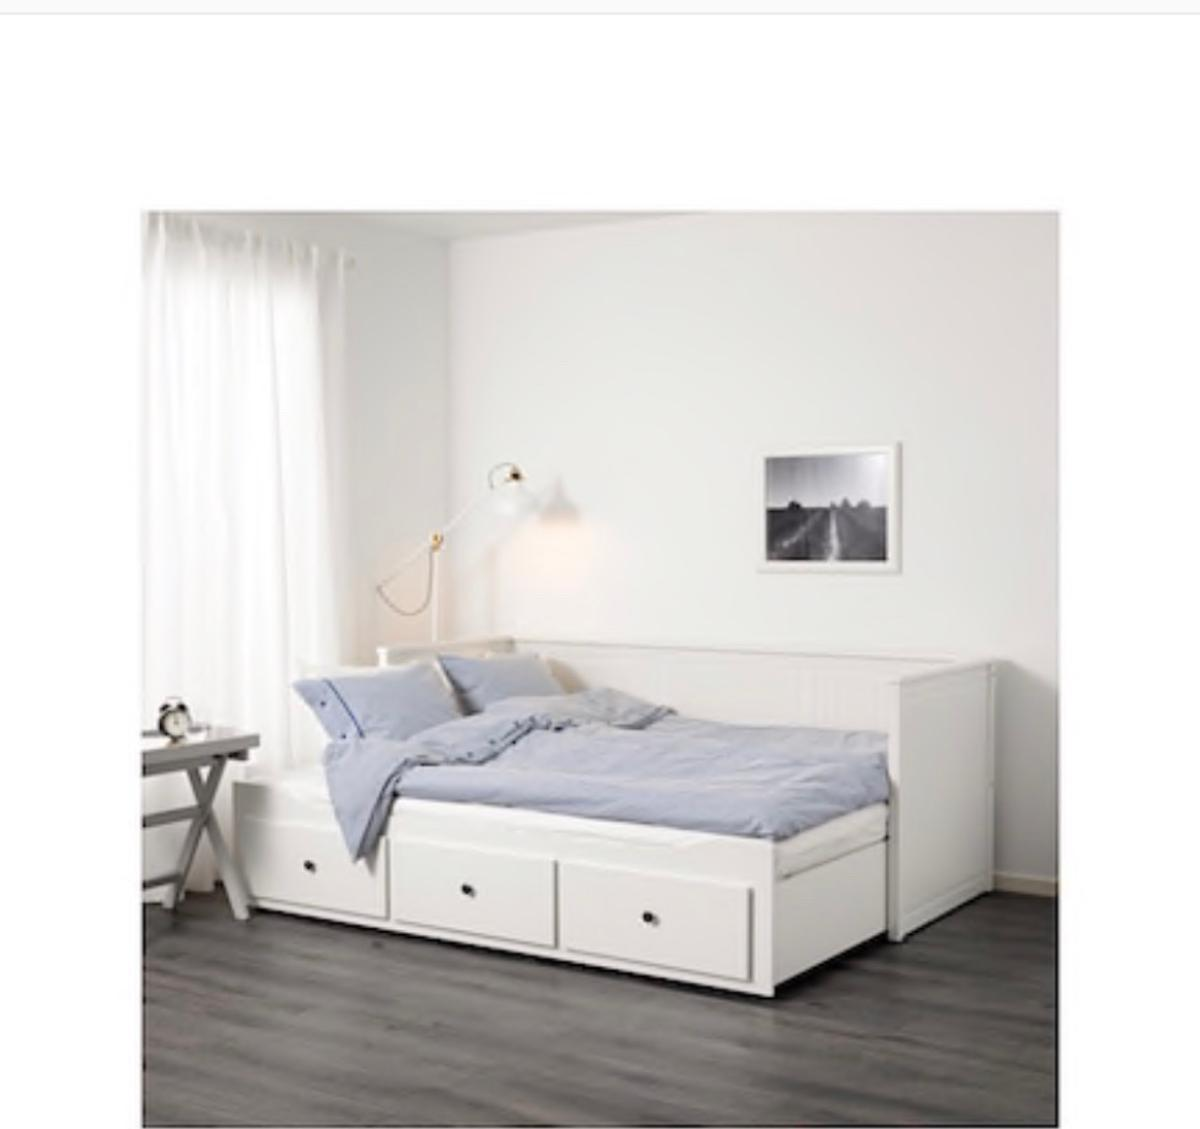 IKEA Double Bed , Single Bed In B68 Sandwell For £100.00 For ...